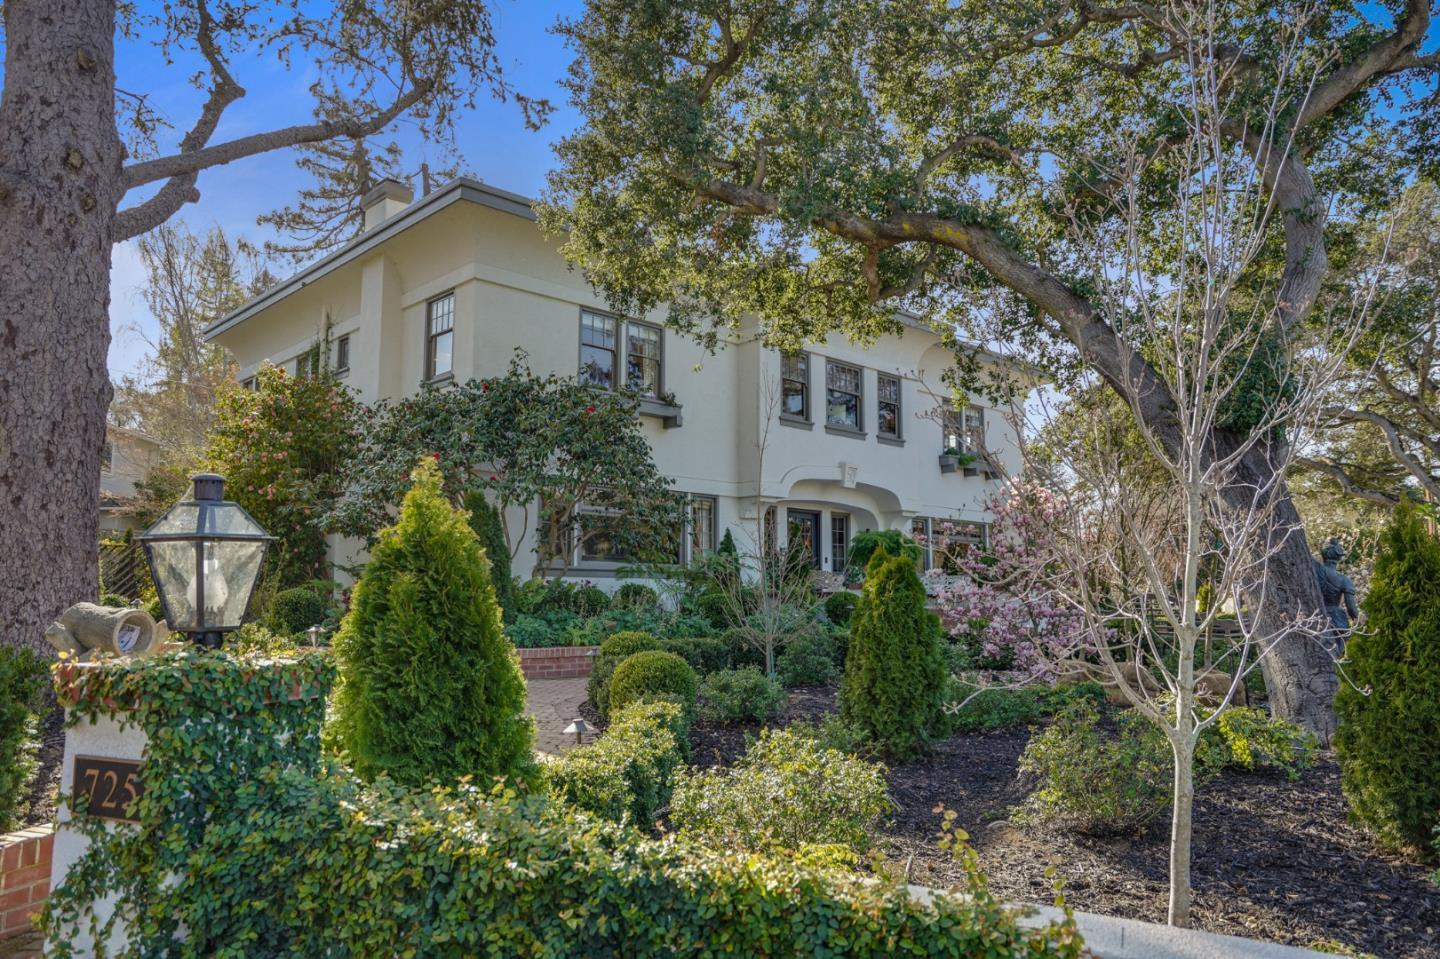 Along tree-lined streets of the San Mateo Park neighborhood, this 1913 architectural masterpiece rests on a large beautifully landscaped lot with winding walkways, exquisite gardens & picturesque courtyard. From intricate millwork to antique lighting, the remarkable residence effortlessly blends classical & craftsman design. In the main house, there is a formal entry with staircase up to 5 bedrooms + office with wide hallways, formal living & dining rooms, a well-appointed kitchen & a sunny family room with French doors leading out to the backyard retreat containing a resort style pool/spa complete with a Baja shelf. For added luxury, a recently added ADU with striking limestone floors serves as a guest house complete with kitchenette & full bath. The attached, 3-car garage is accessible through the cobblestone driveway. The character that defines this home is truly unparalleled. Quality materials, oversized rooms & location blocks from Burlingame Ave make this home a coveted treasure.